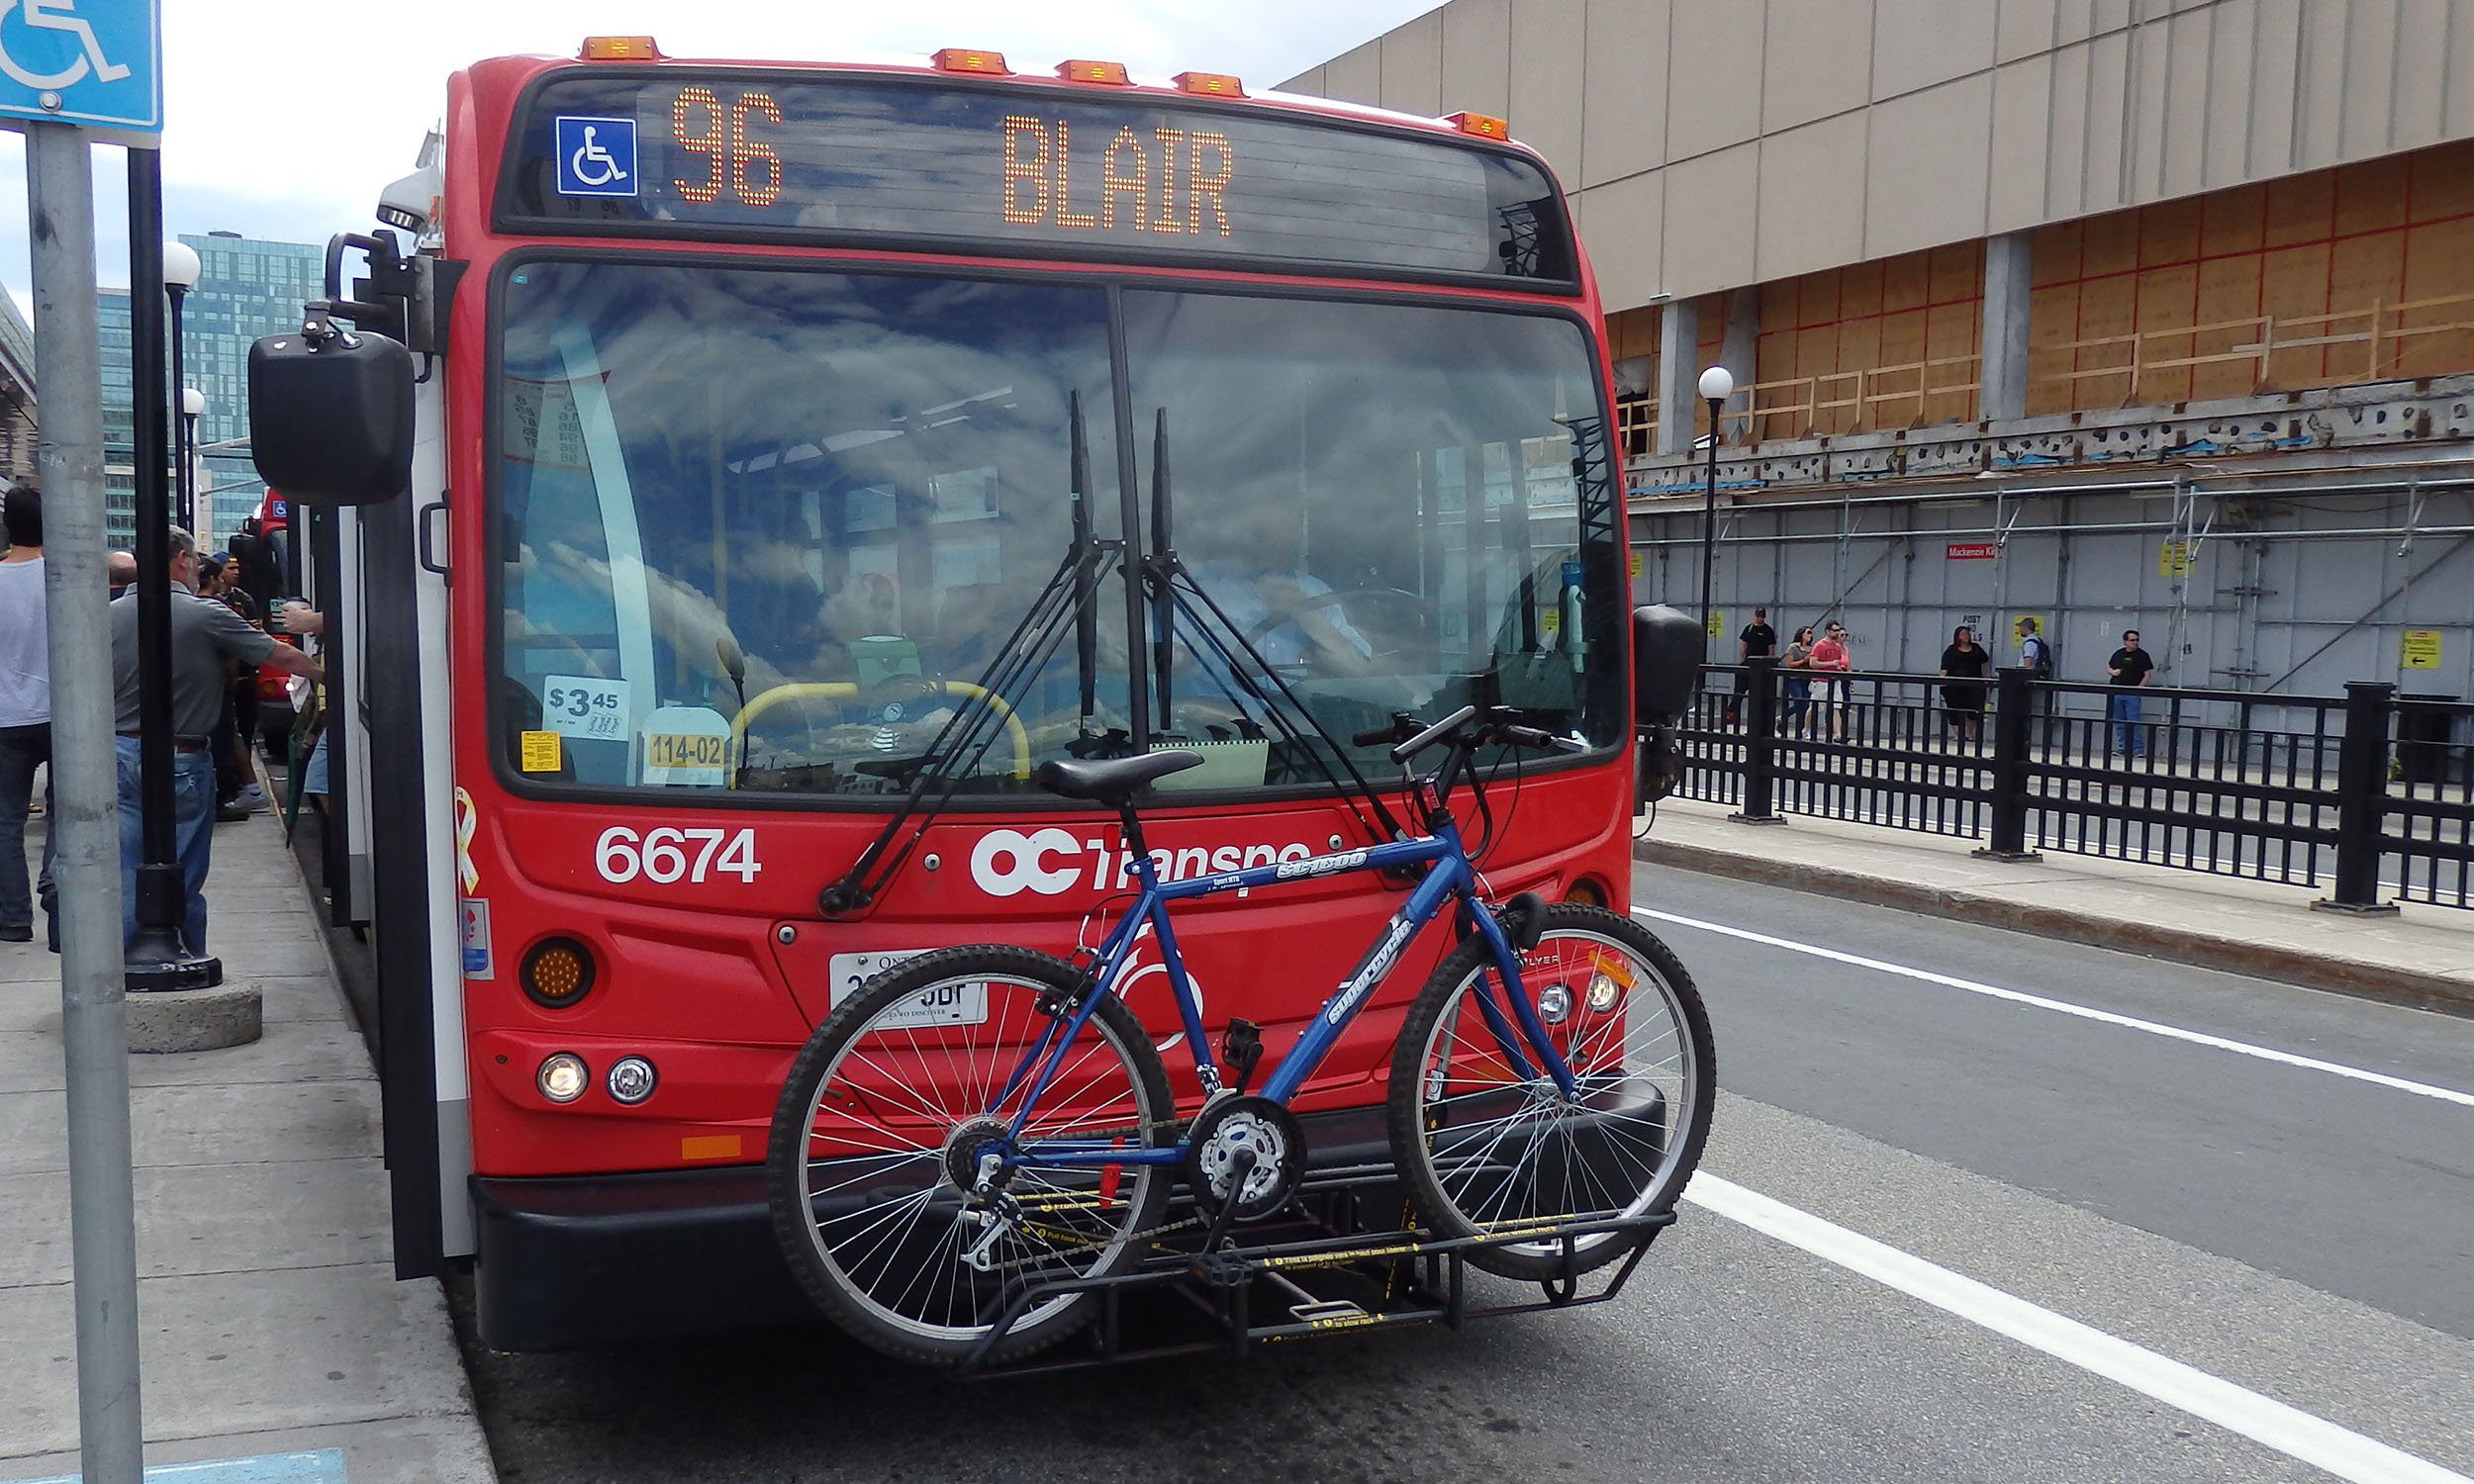 Bus with Bike